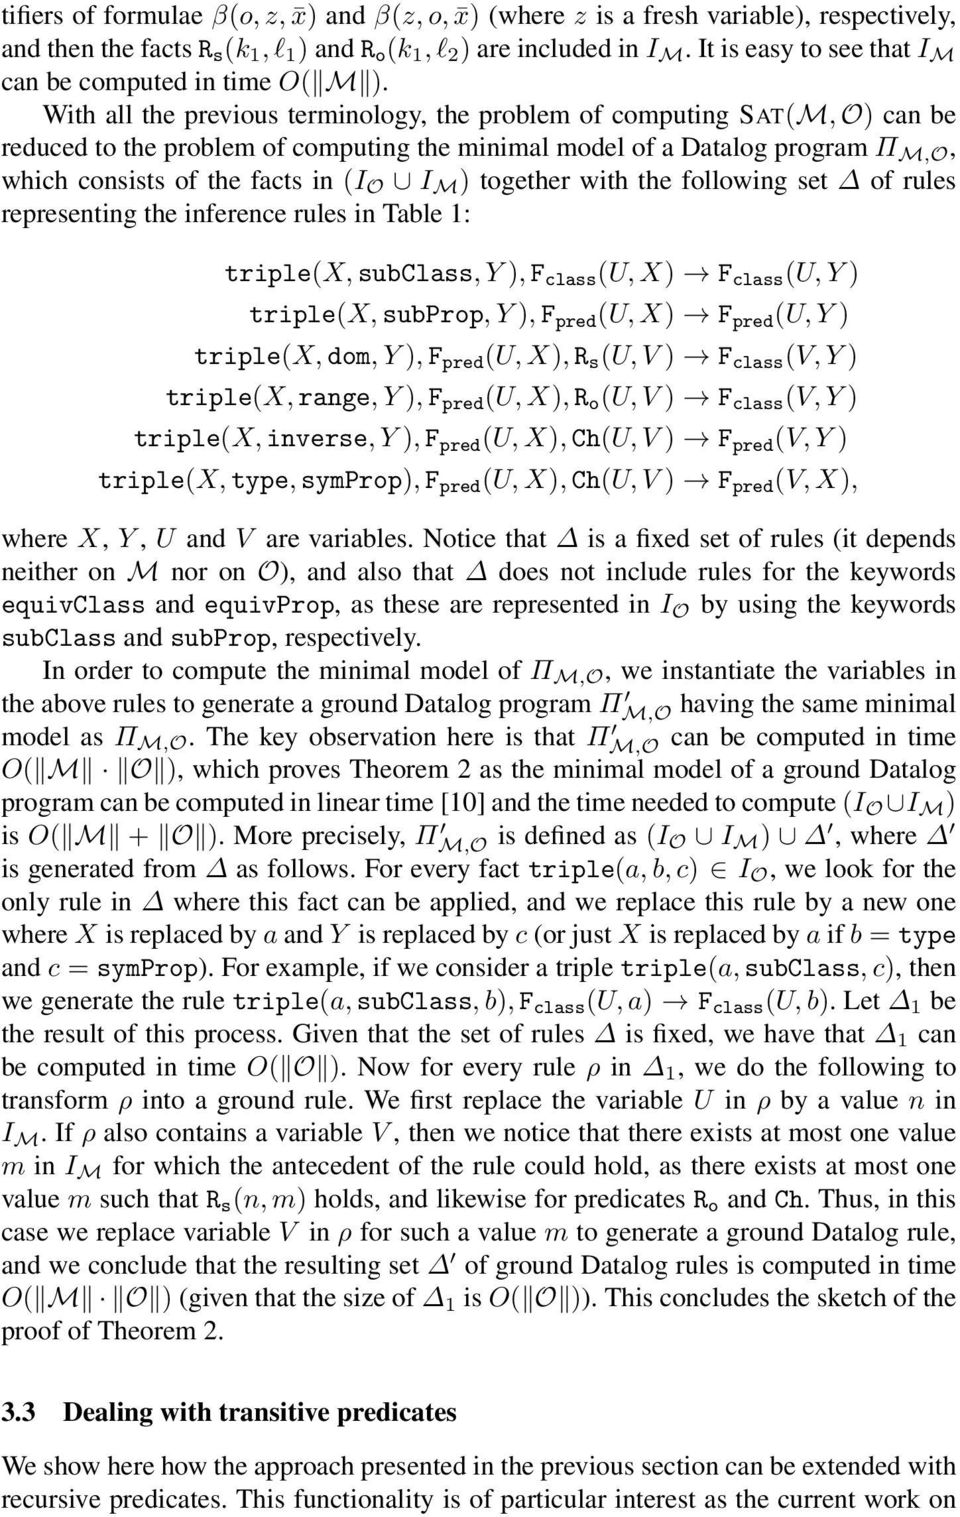 With all the previous terminology, the problem of computing SAT(M, O) can be reduced to the problem of computing the minimal model of a Datalog program Π M,O, which consists of the facts in (I O I M